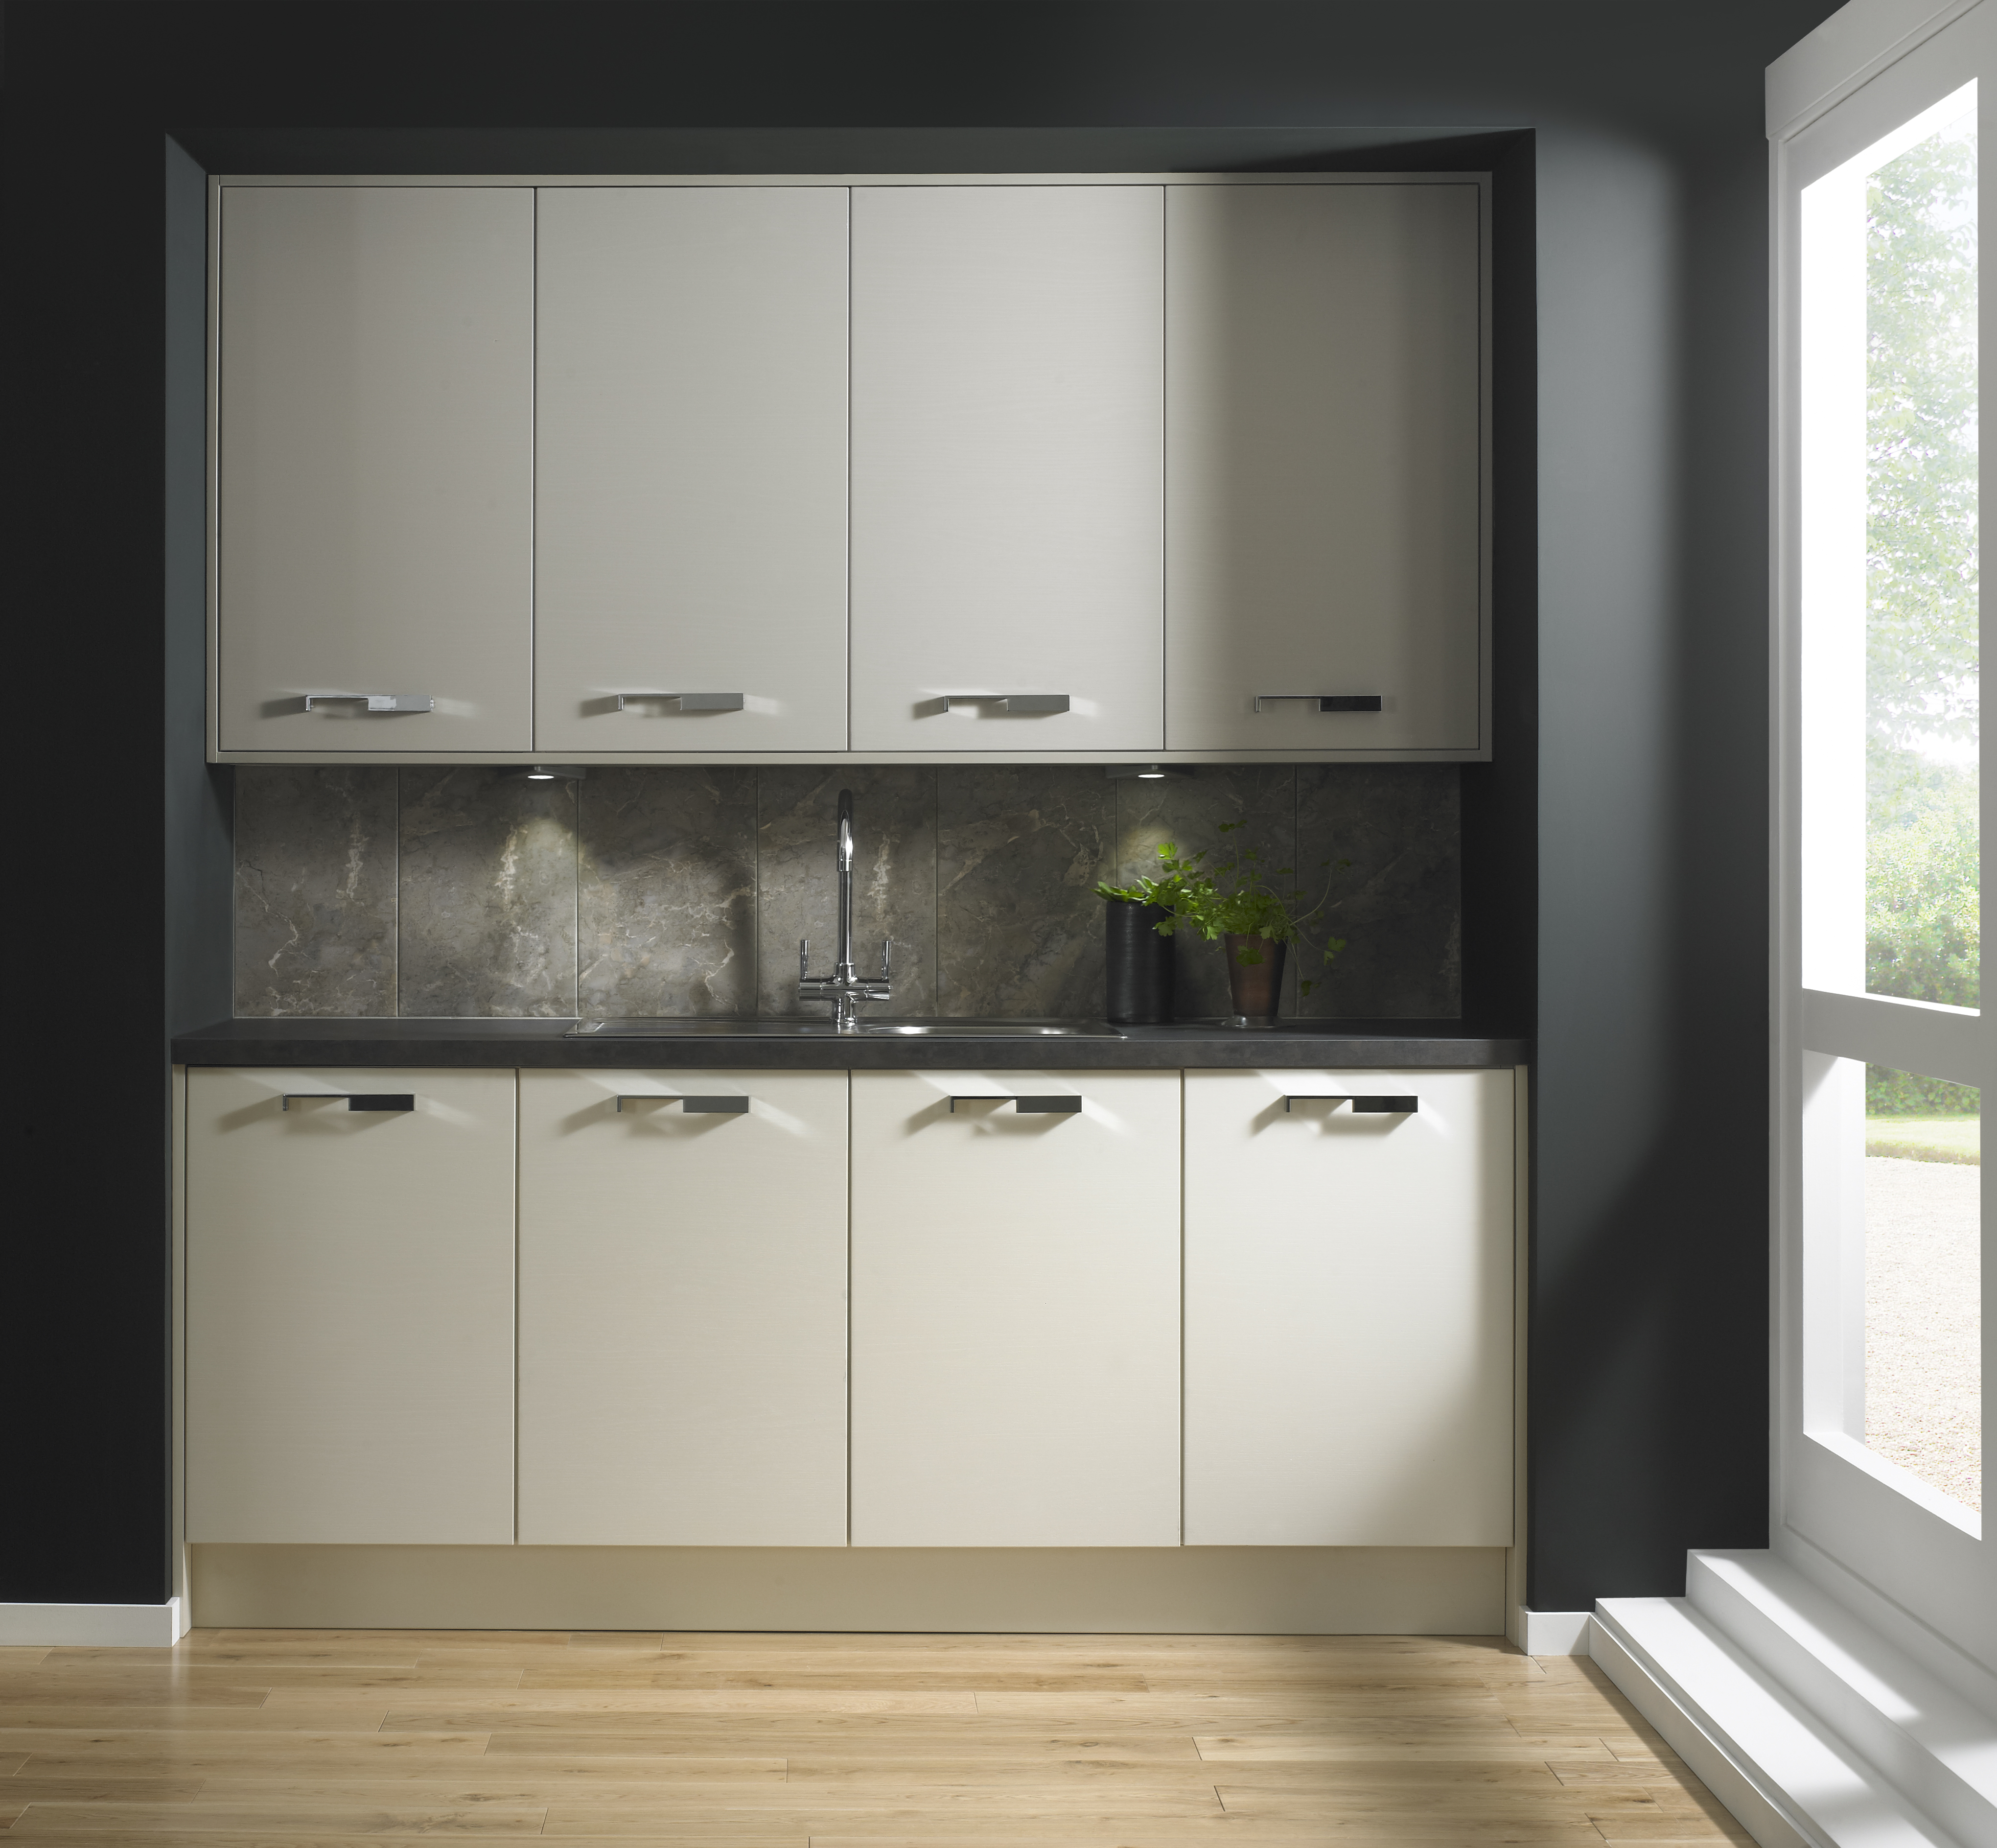 Uk Kitchens And Bathrooms Symphony Kitchens Plaza Mussel